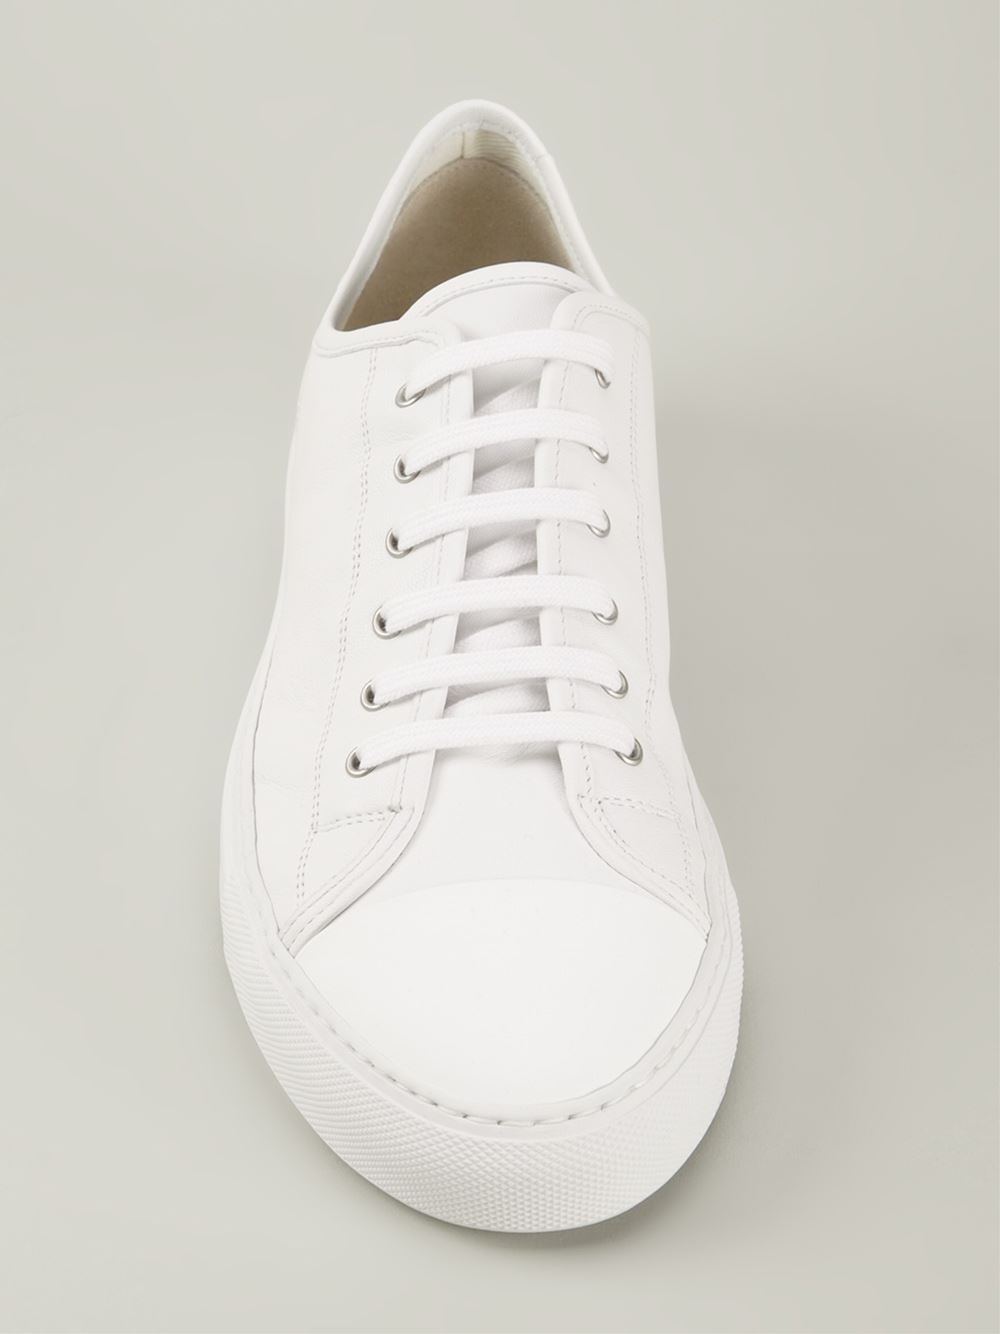 common projects lace up sneakers in white for men lyst. Black Bedroom Furniture Sets. Home Design Ideas